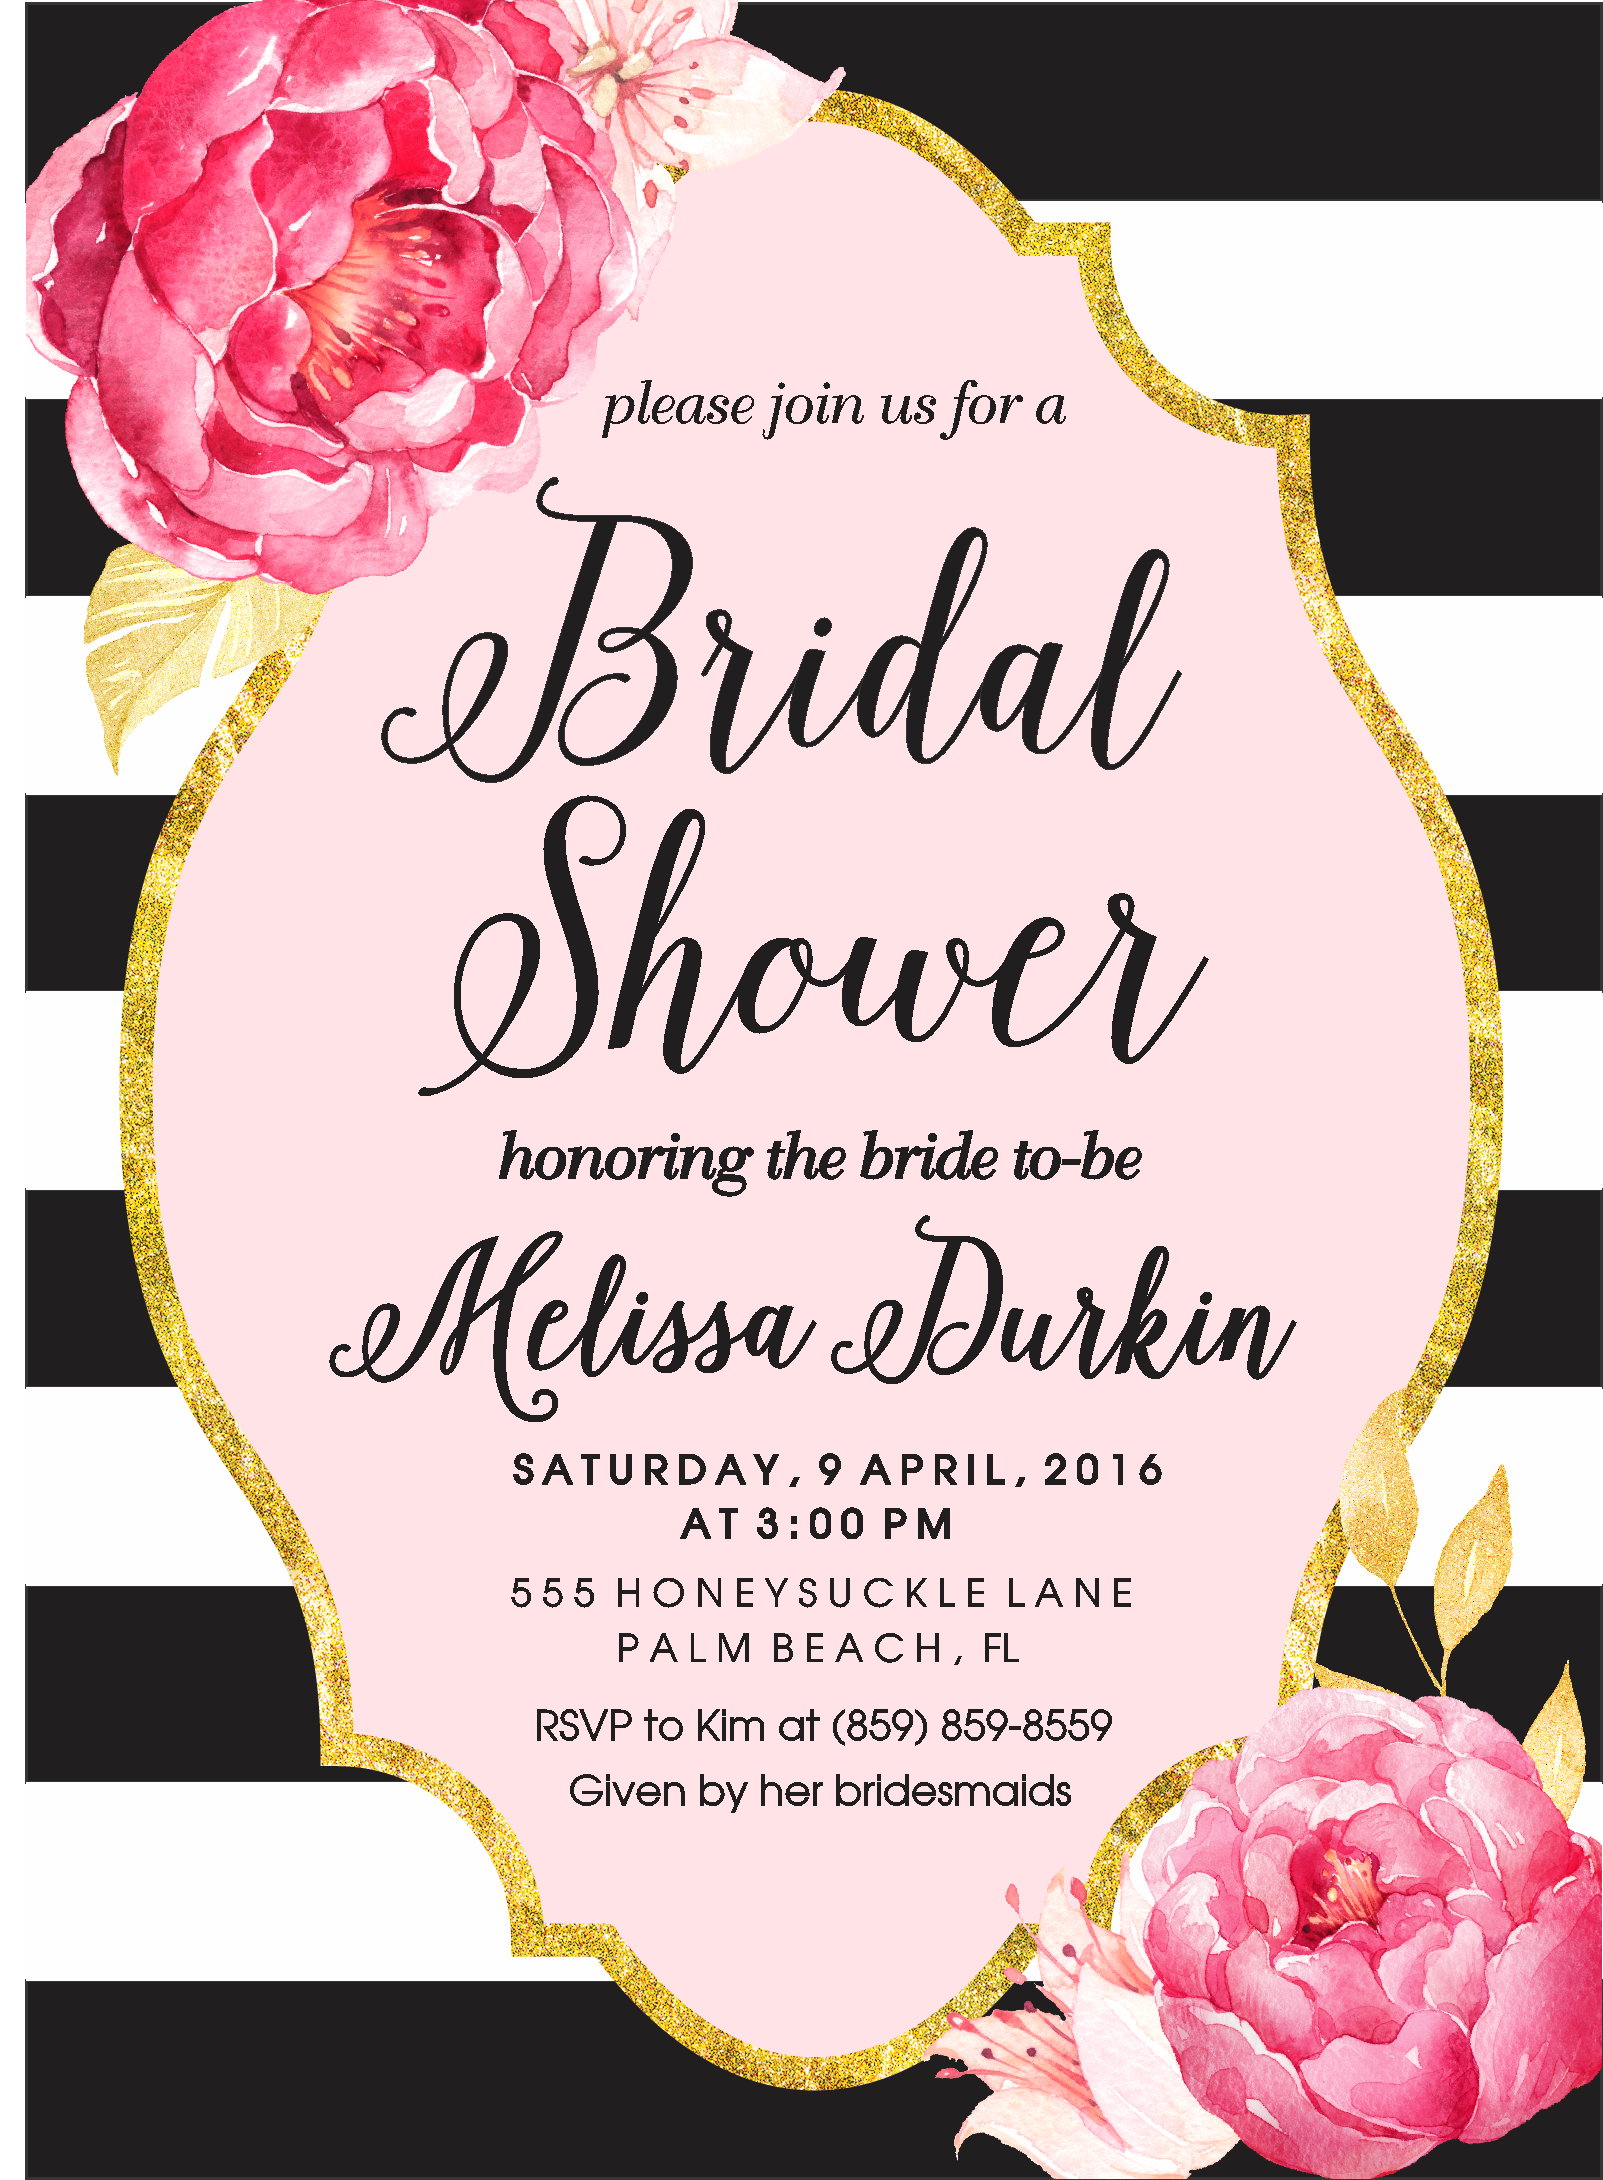 Black and white bridal shower invitation with gold frame and watercolor flowers